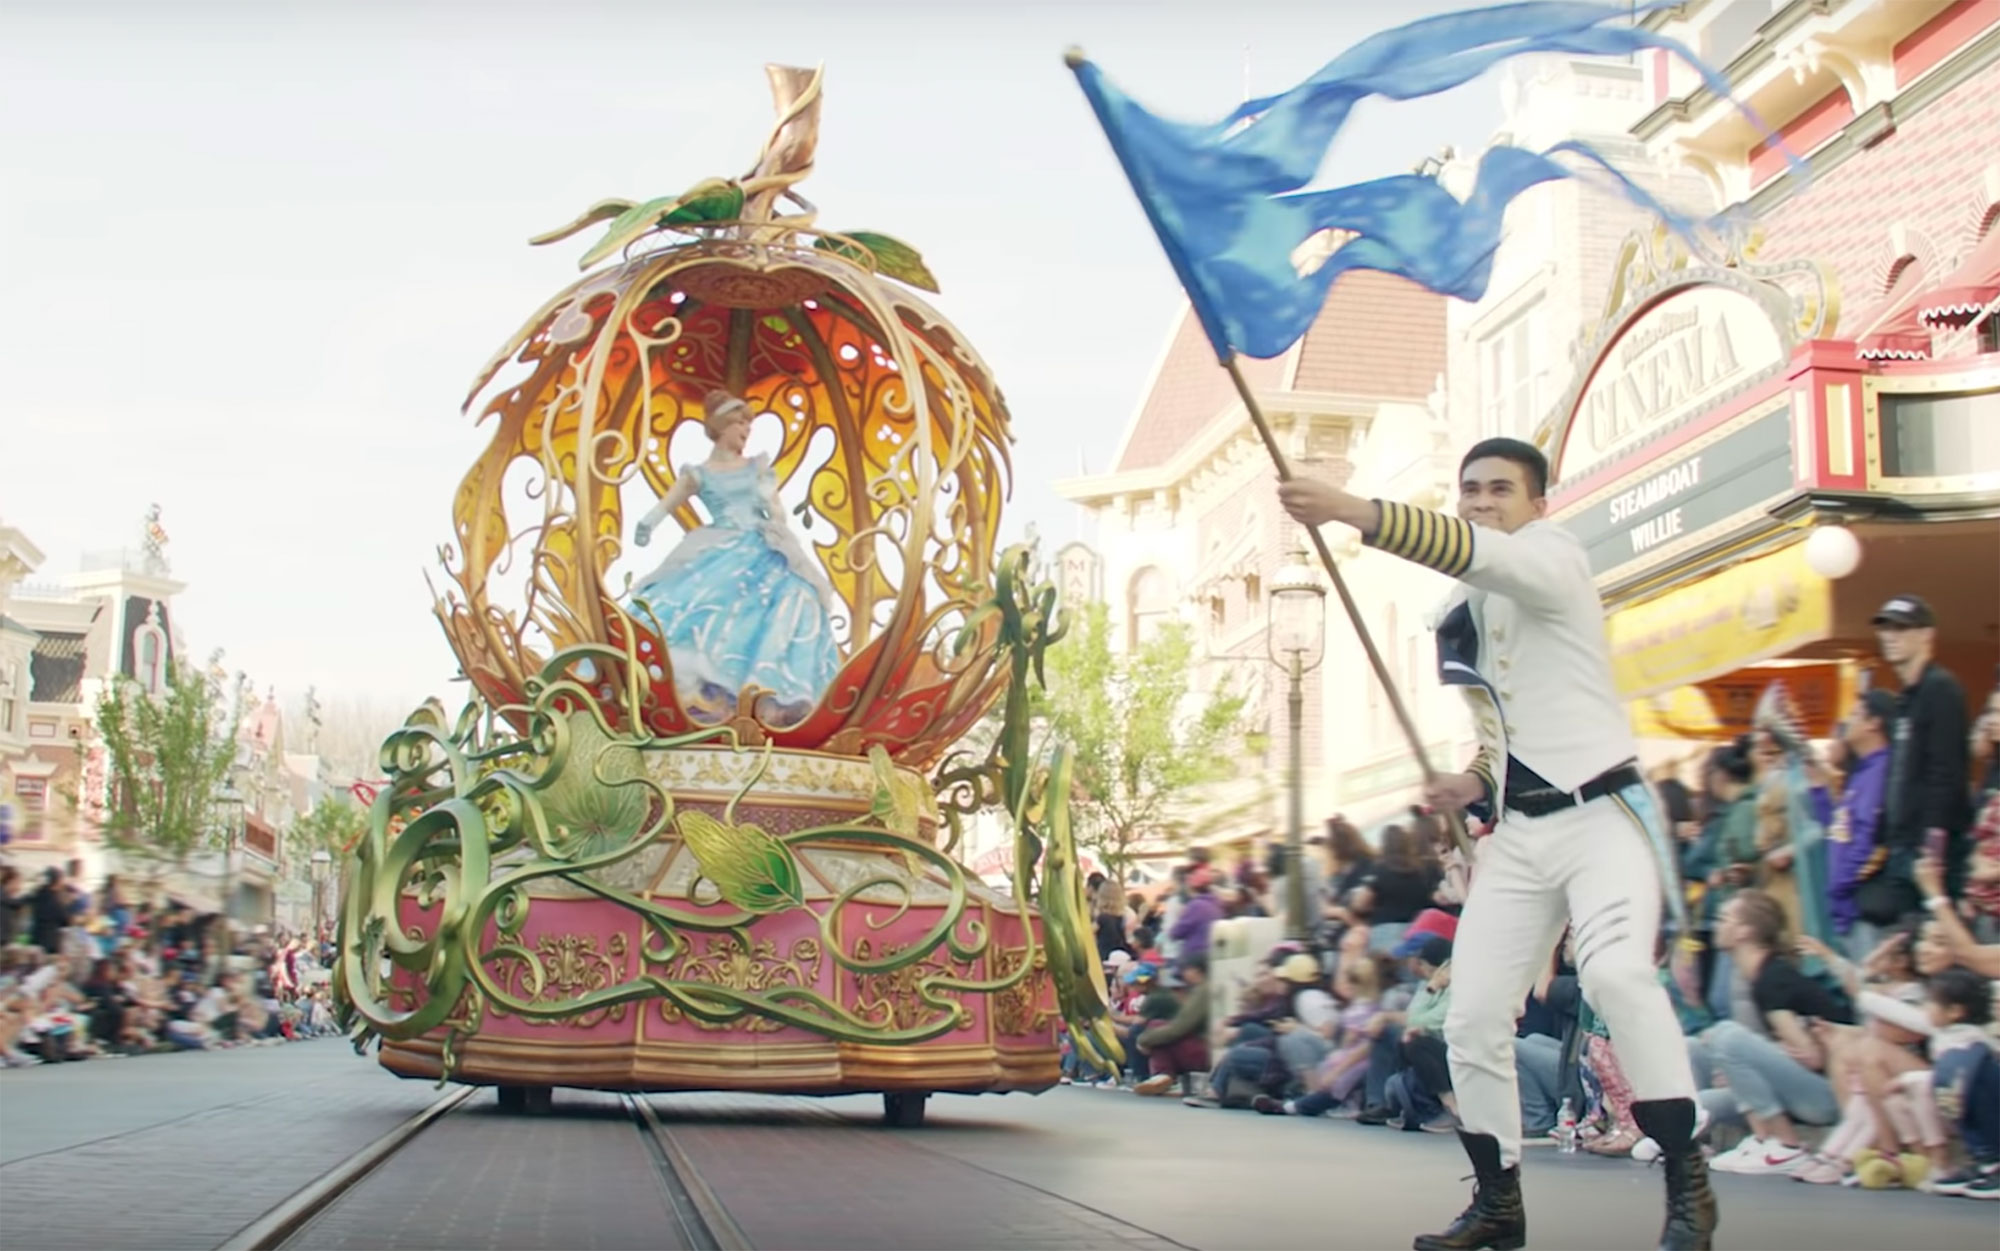 Disney World Parade